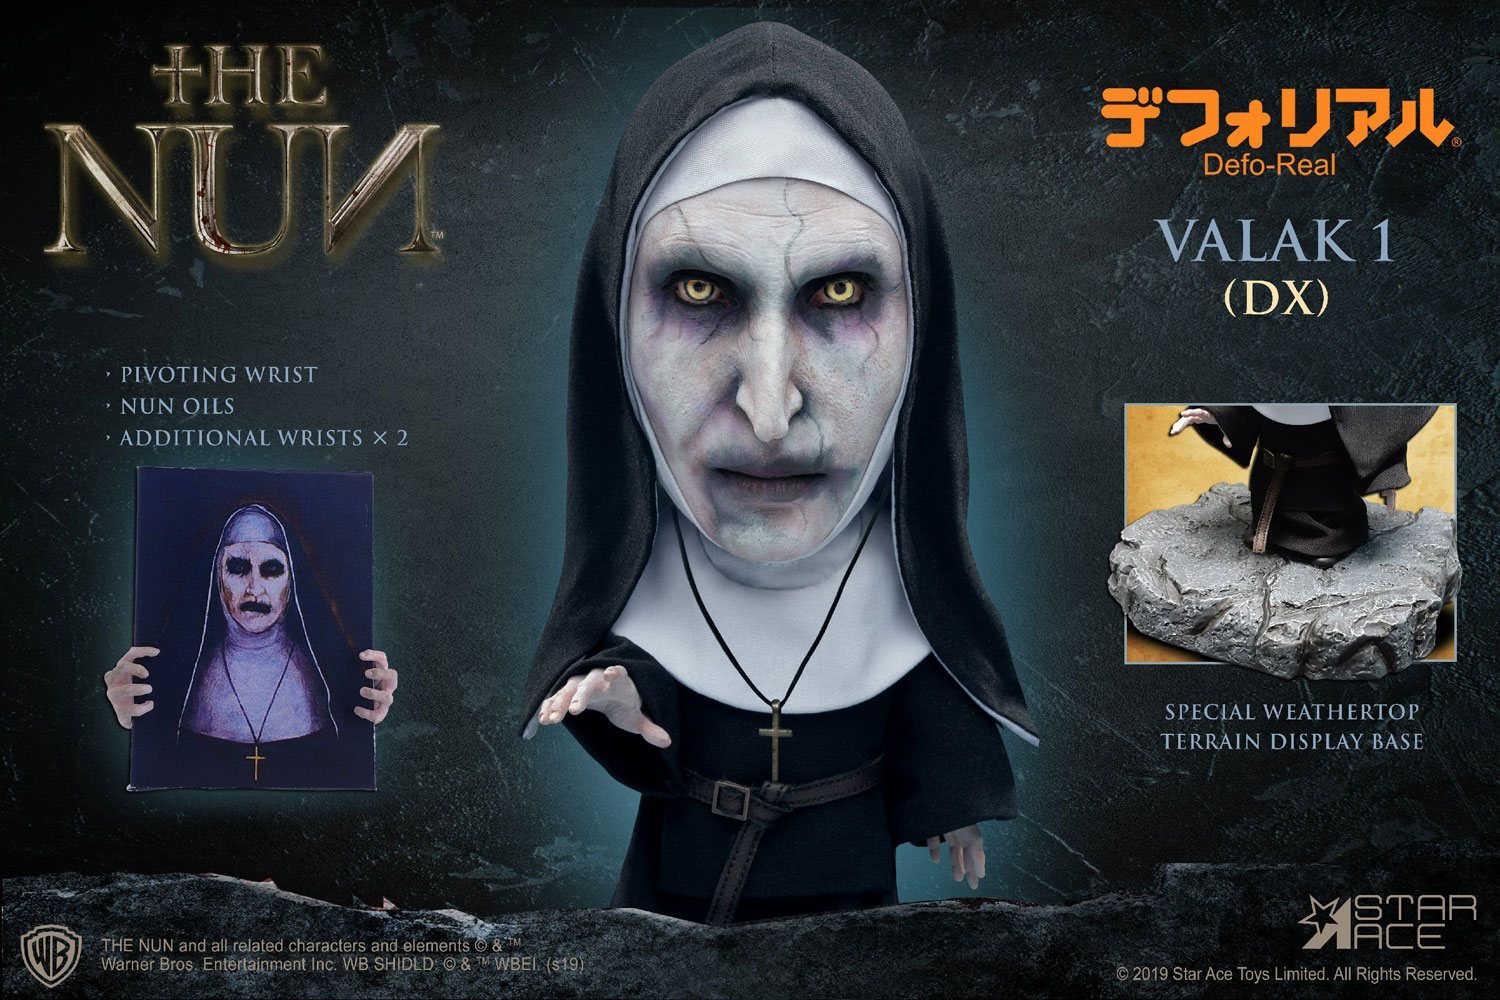 The Nun Defo-Real Series Soft Vinyl Figure Valak Deluxe Version 15 cm